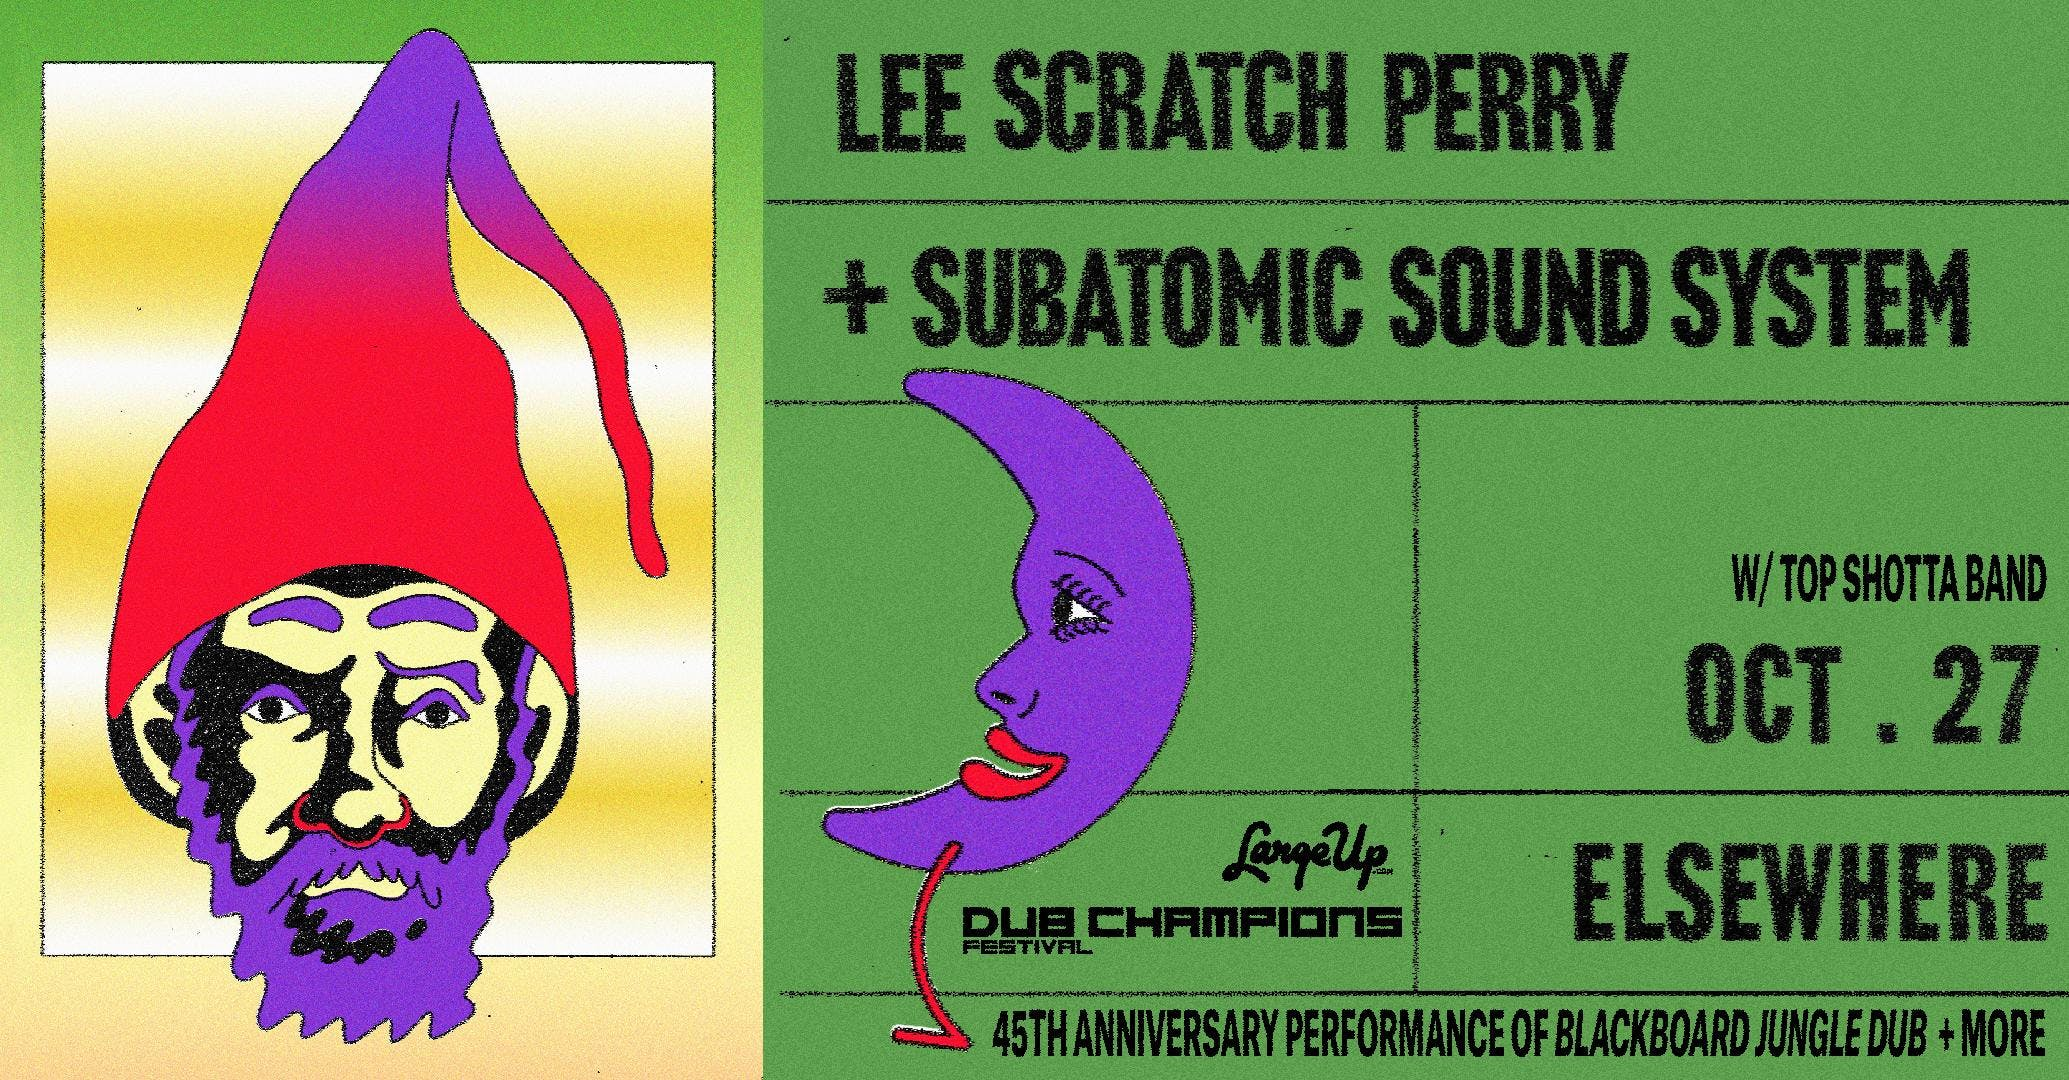 Lee Scratch Perry + Subatomic Sound System: 45th Anniversary Performance of 'Blackboard Jungle Dub' & More